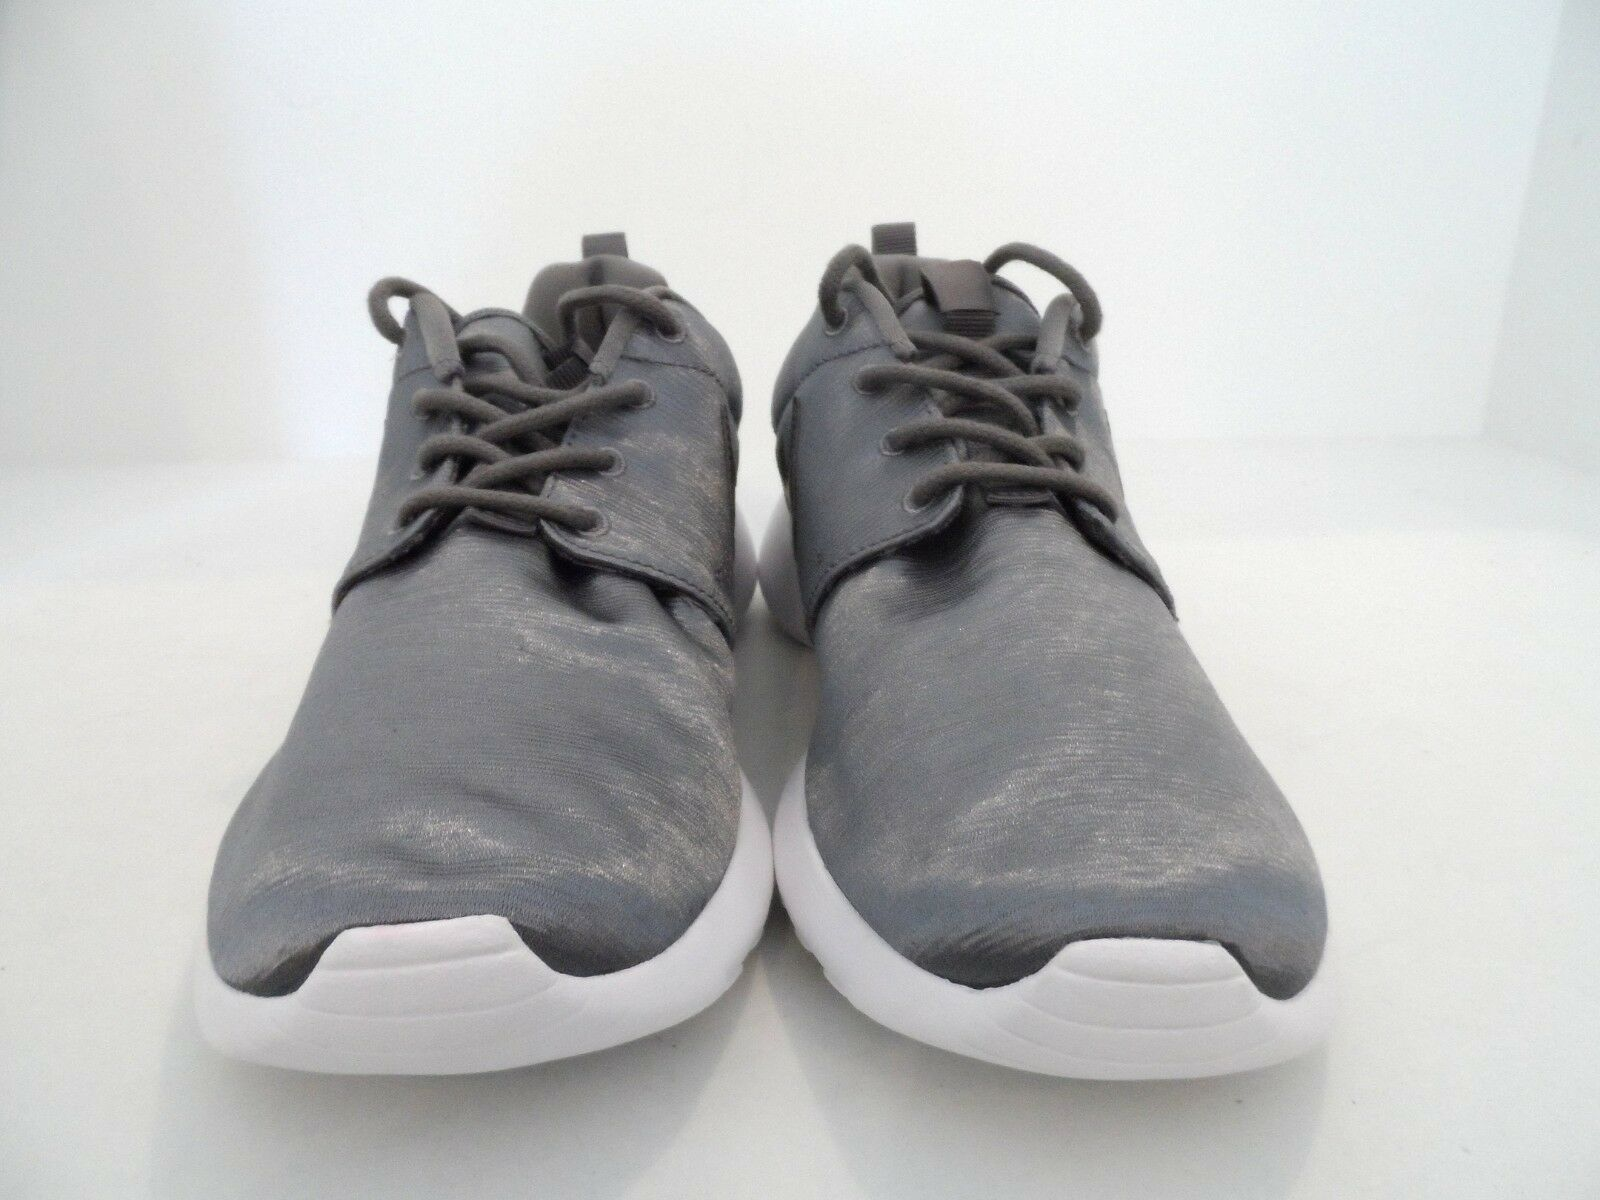 2f7bf8dd9a2 ... Nike Women s Roshe One PRM Running Shoes Shoes Shoes Smoke Gray White  Size 7 d4b424 ...